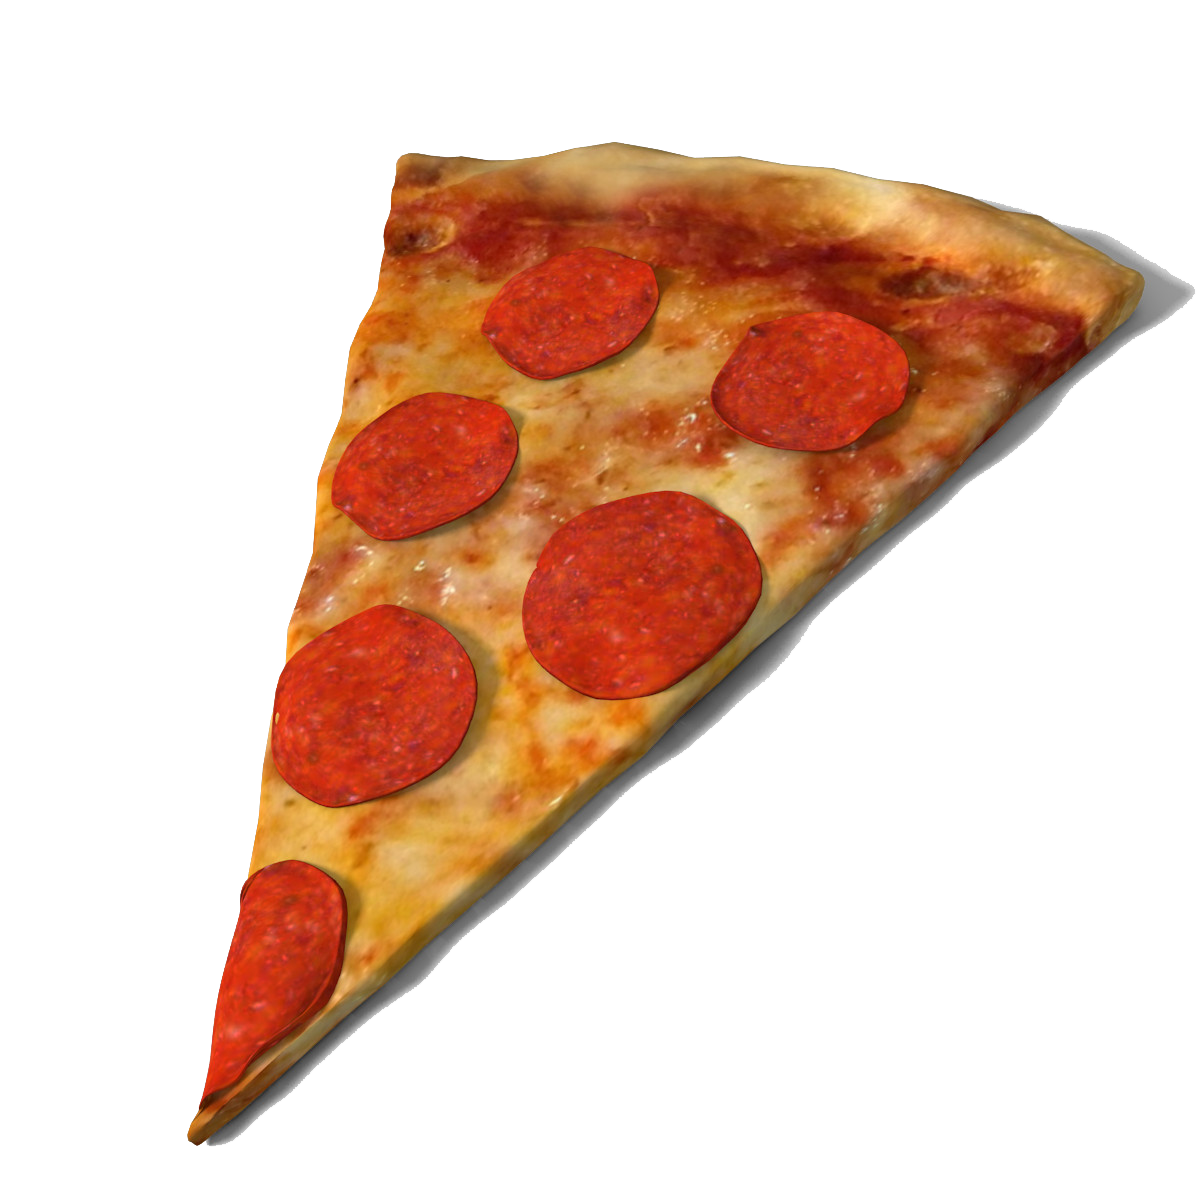 Pizza clipart pizza slice. Free png transparent images